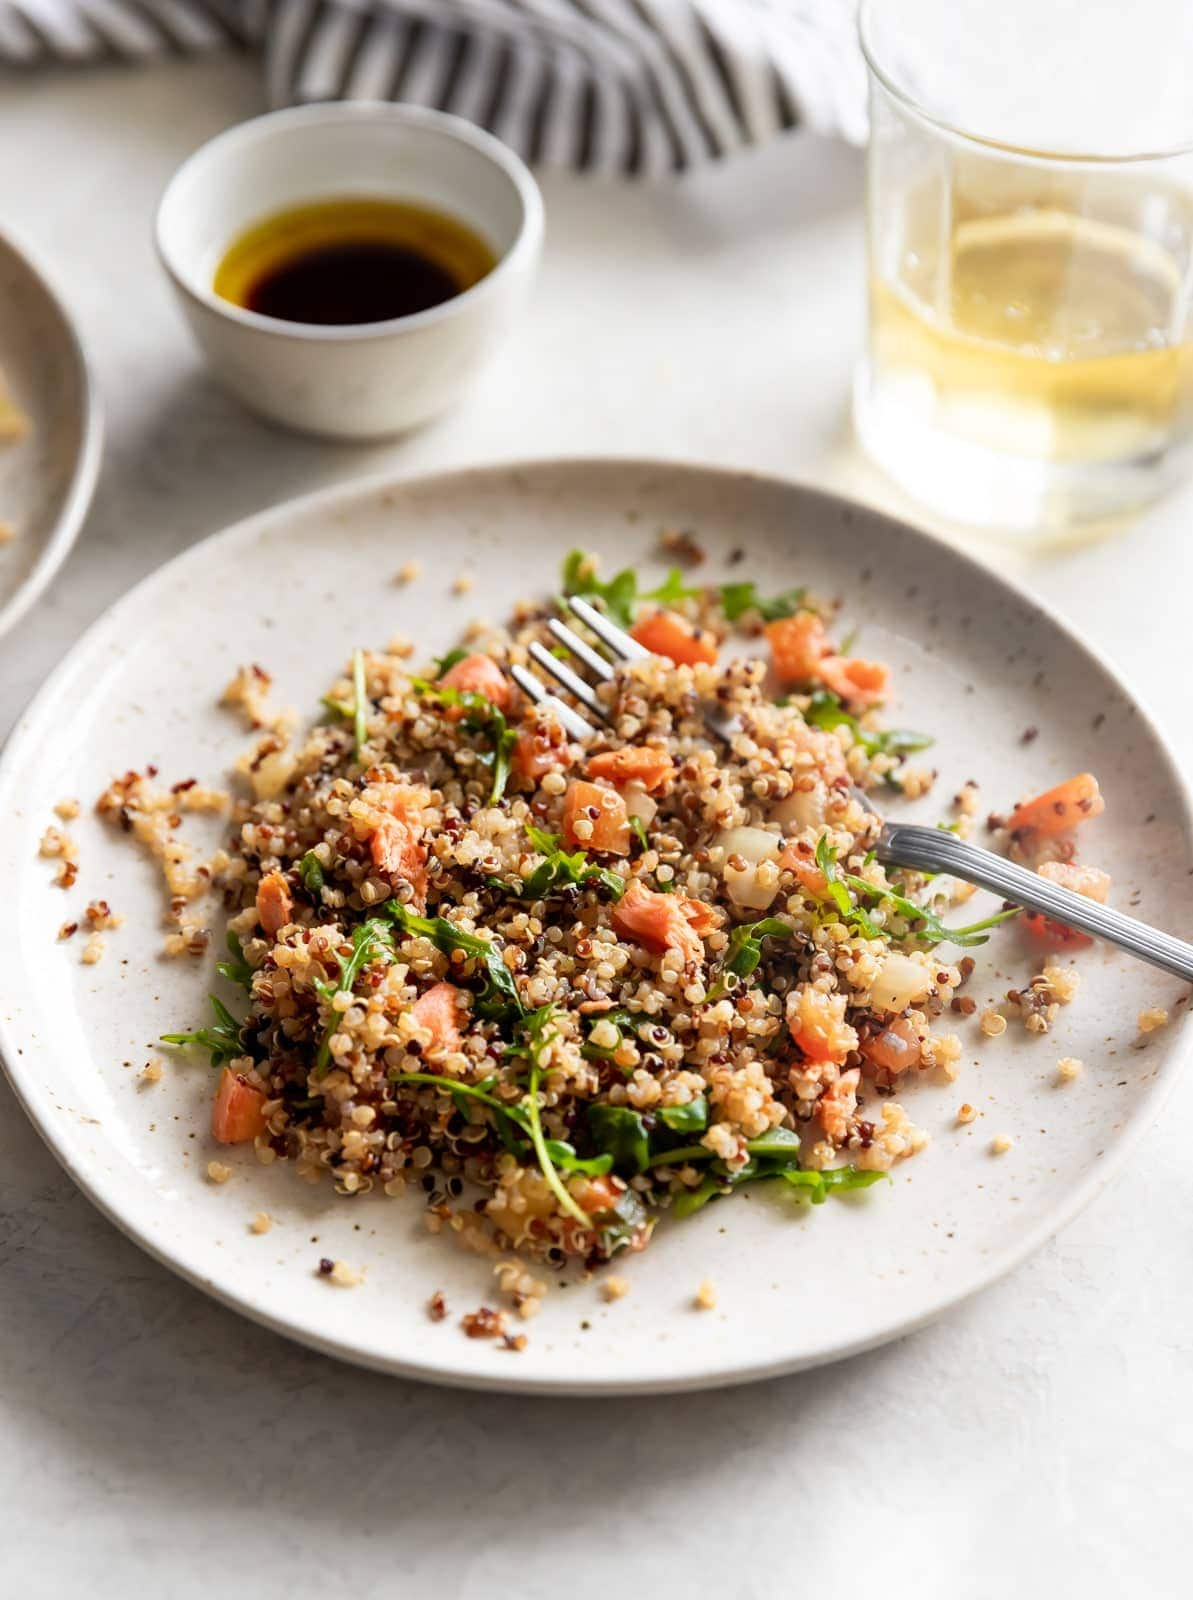 Salmon Quinoa Salad With Balsamic Vinaigrette A Sassy Spoon